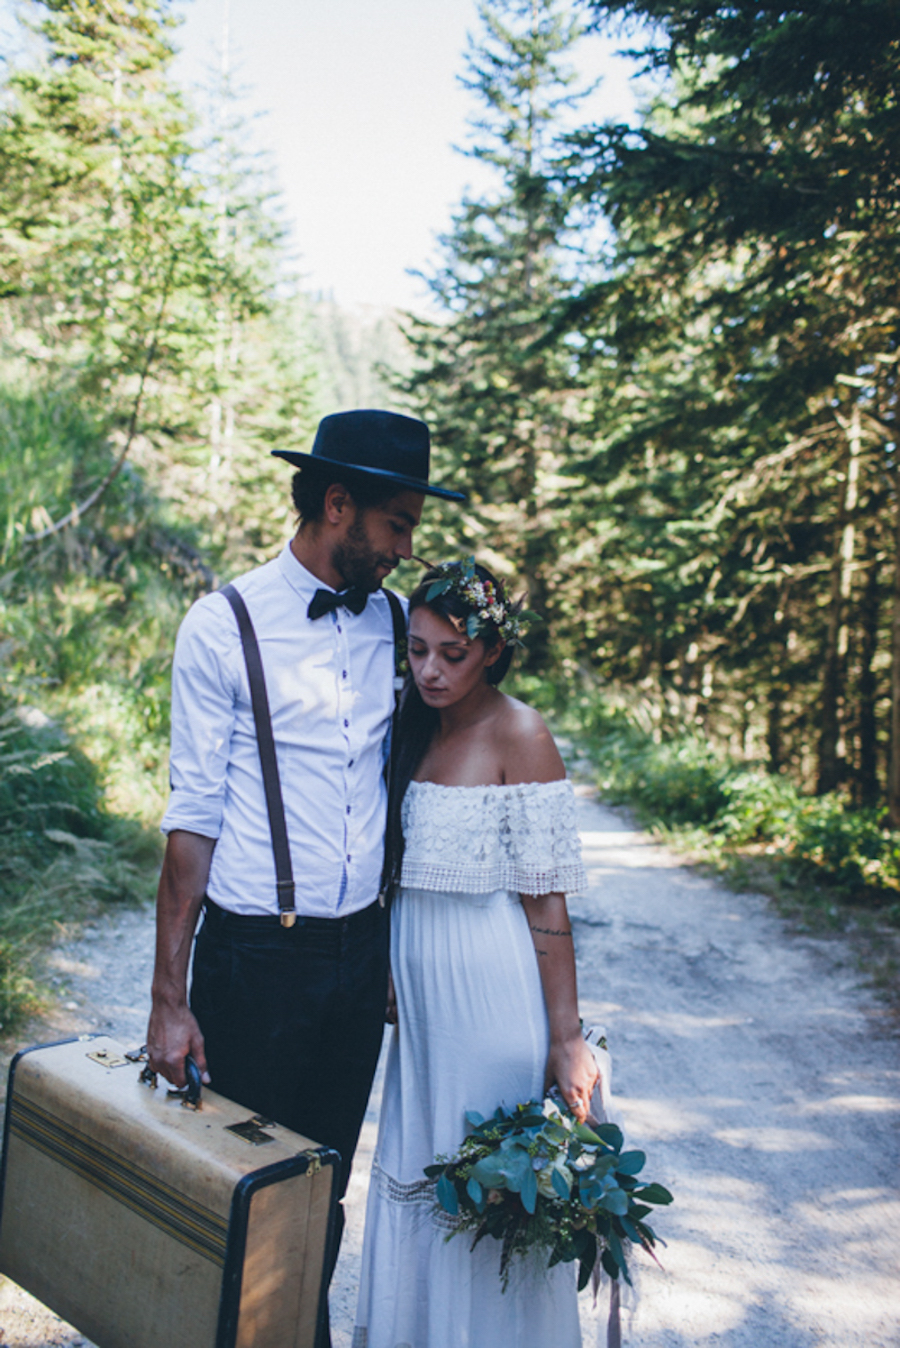 matrimonio-boho-chic-e-naturale-sweetphotofactory-wedding-wonderland-29